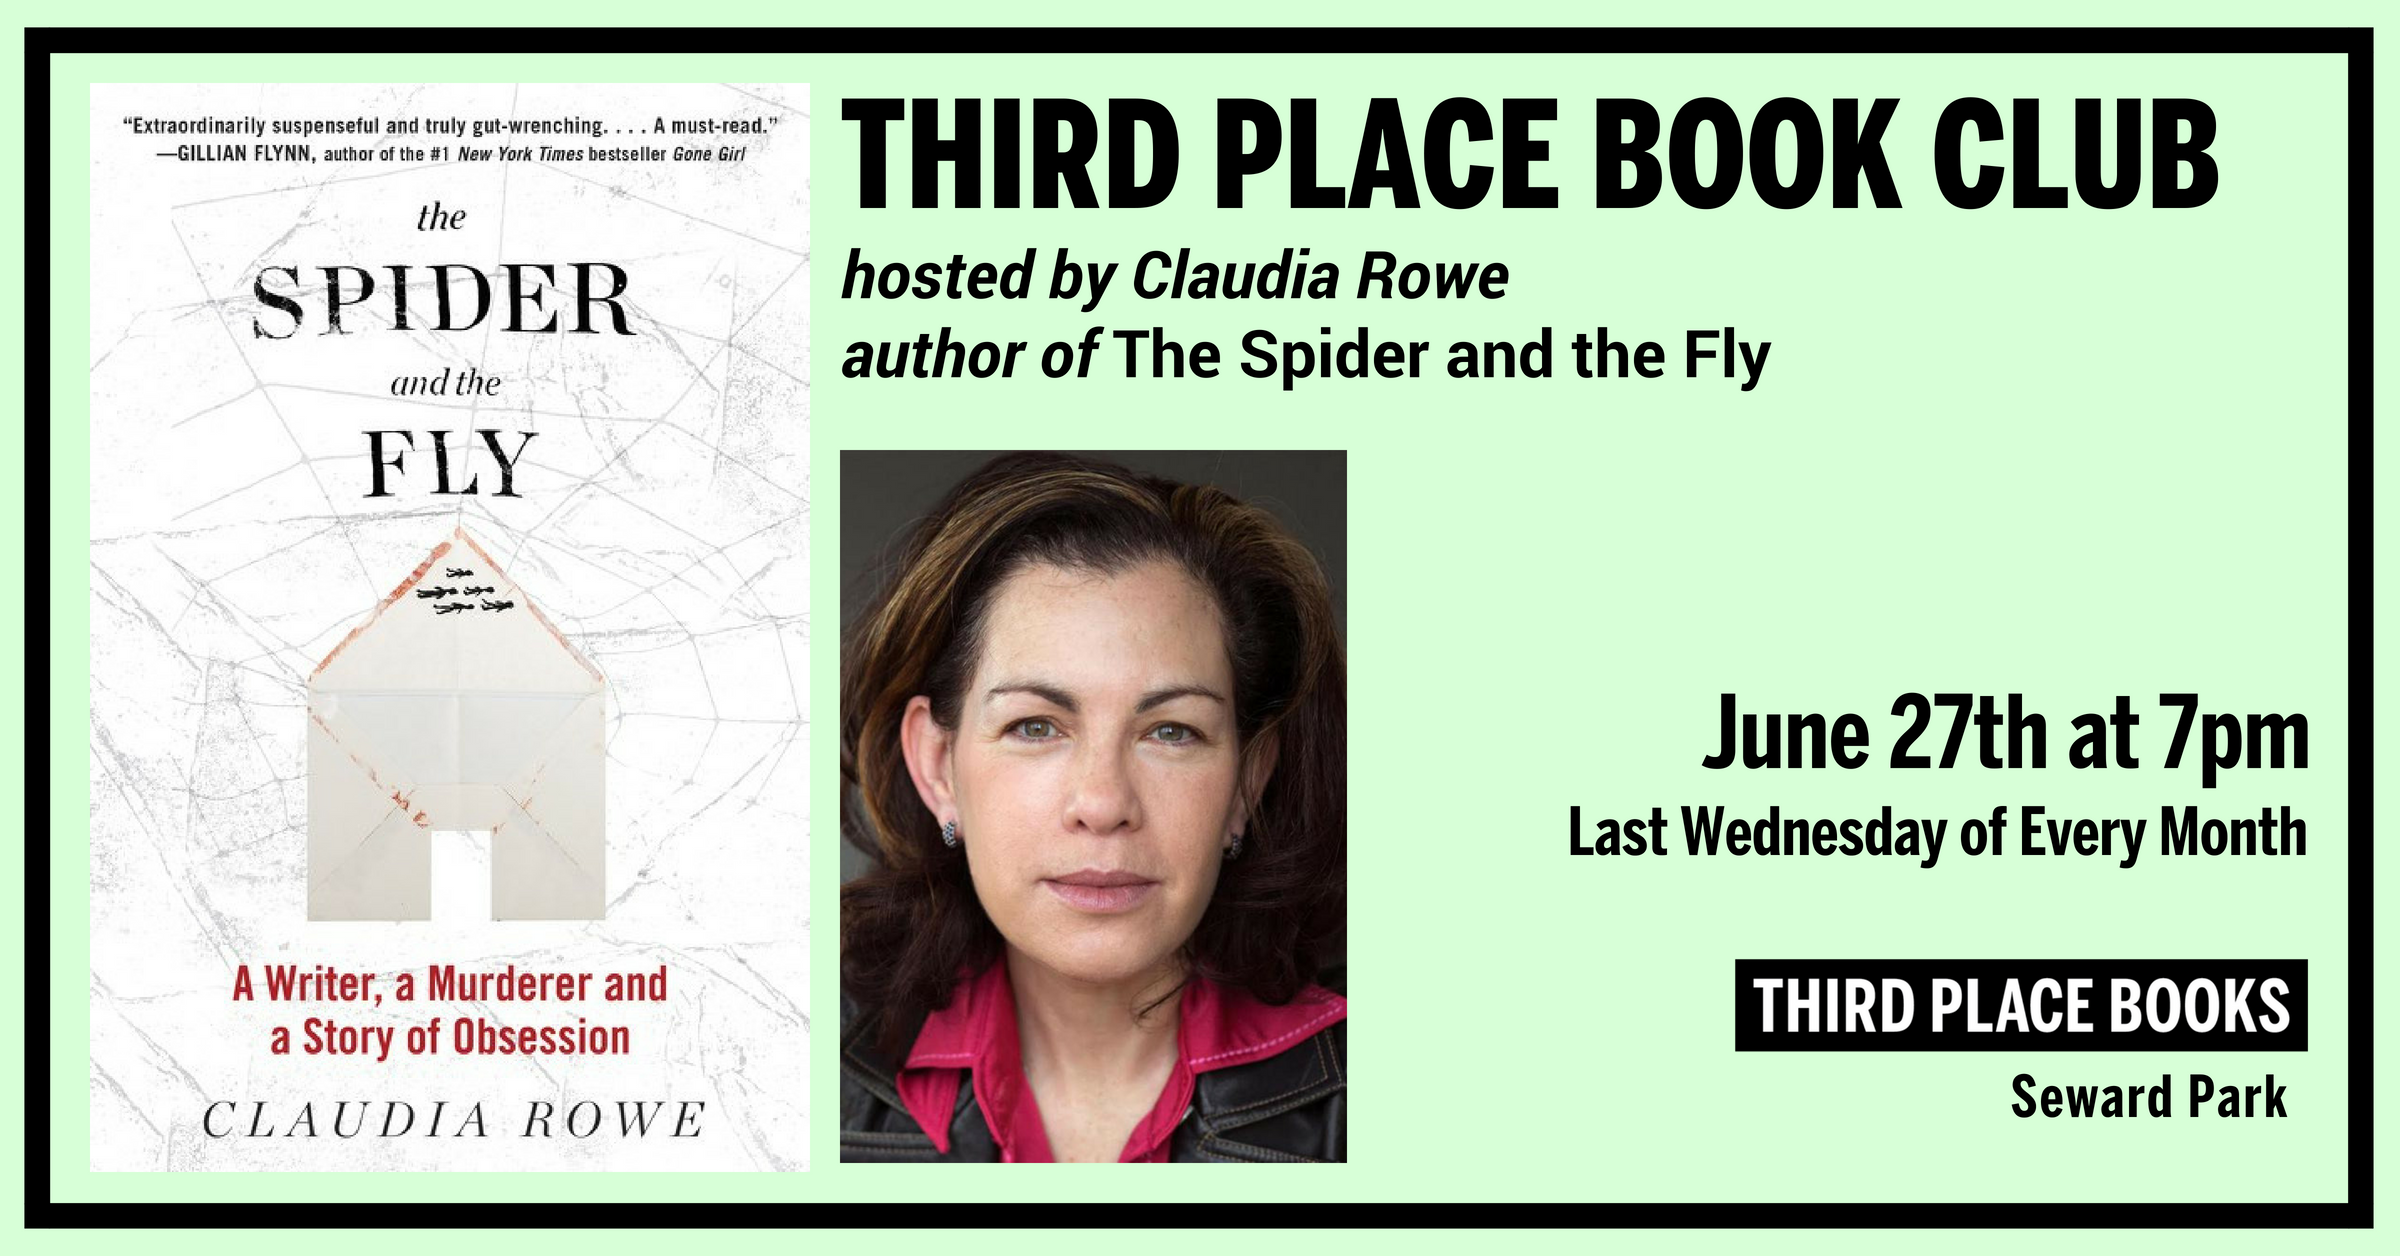 Third Place Book Club with Claudia Rowe reading The Spider & the Fly on Wednesday, June 27th at 7pm